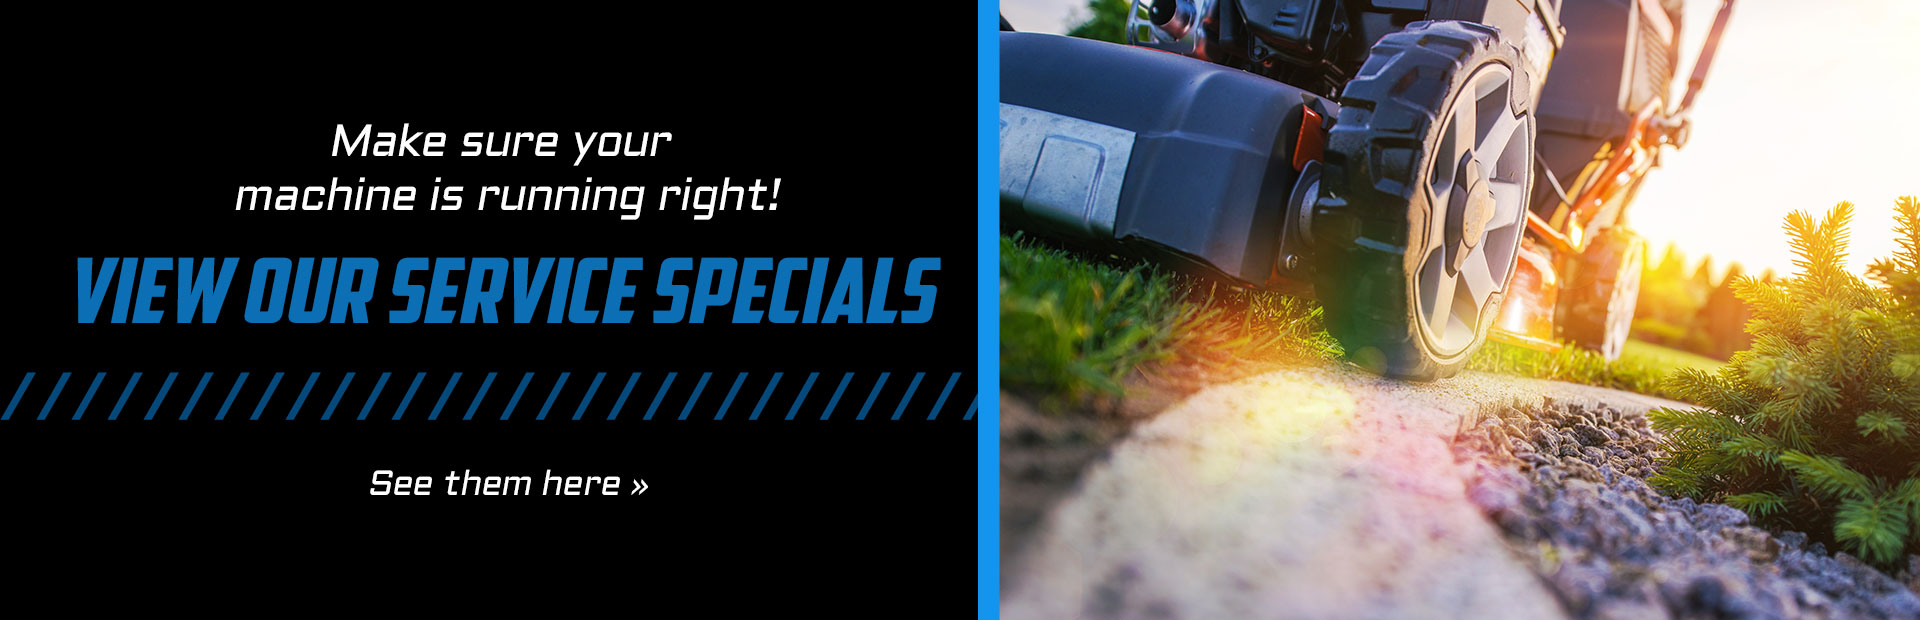 Make sure your machine is running right and view our service specials! Click here for details.